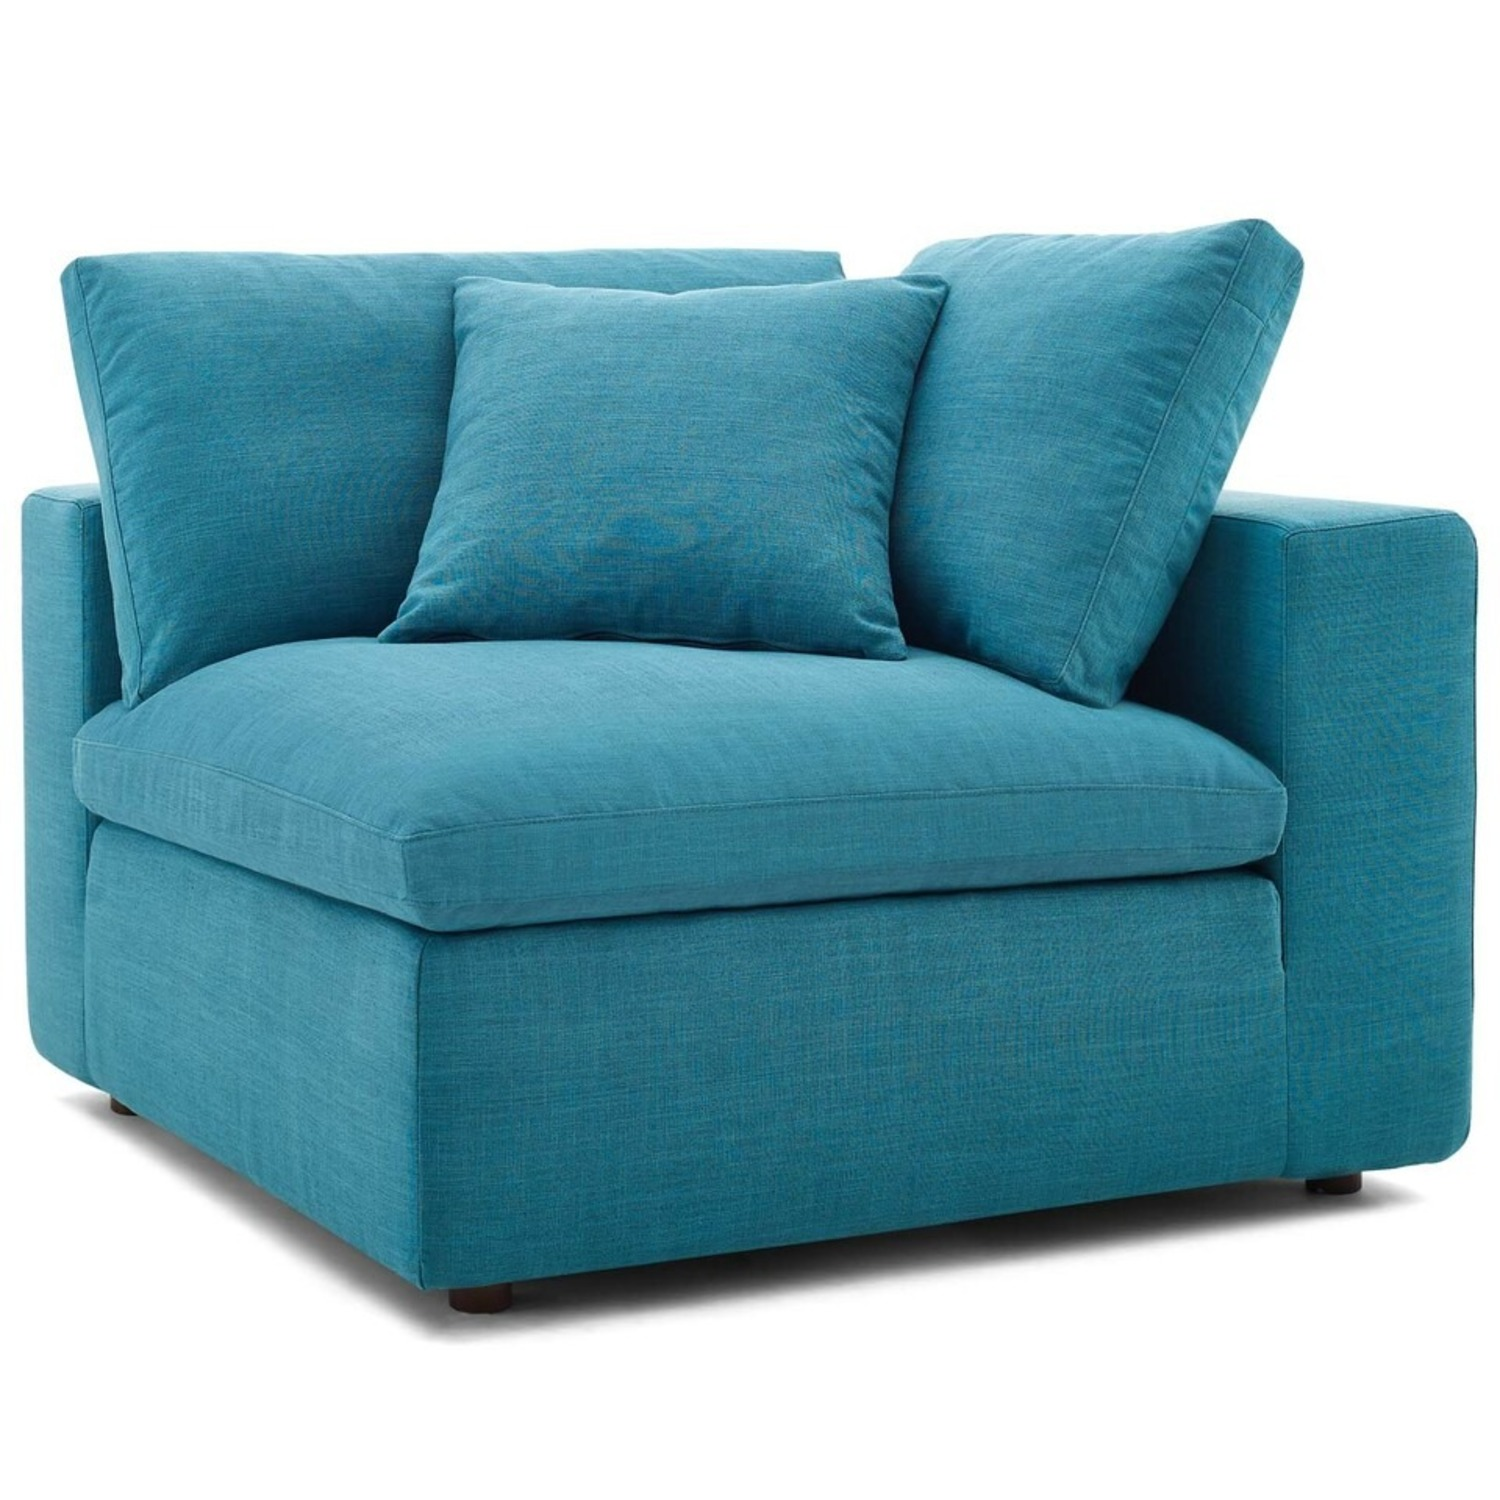 6-Piece Sectional Sofa In Teal Linen Fabric - image-4